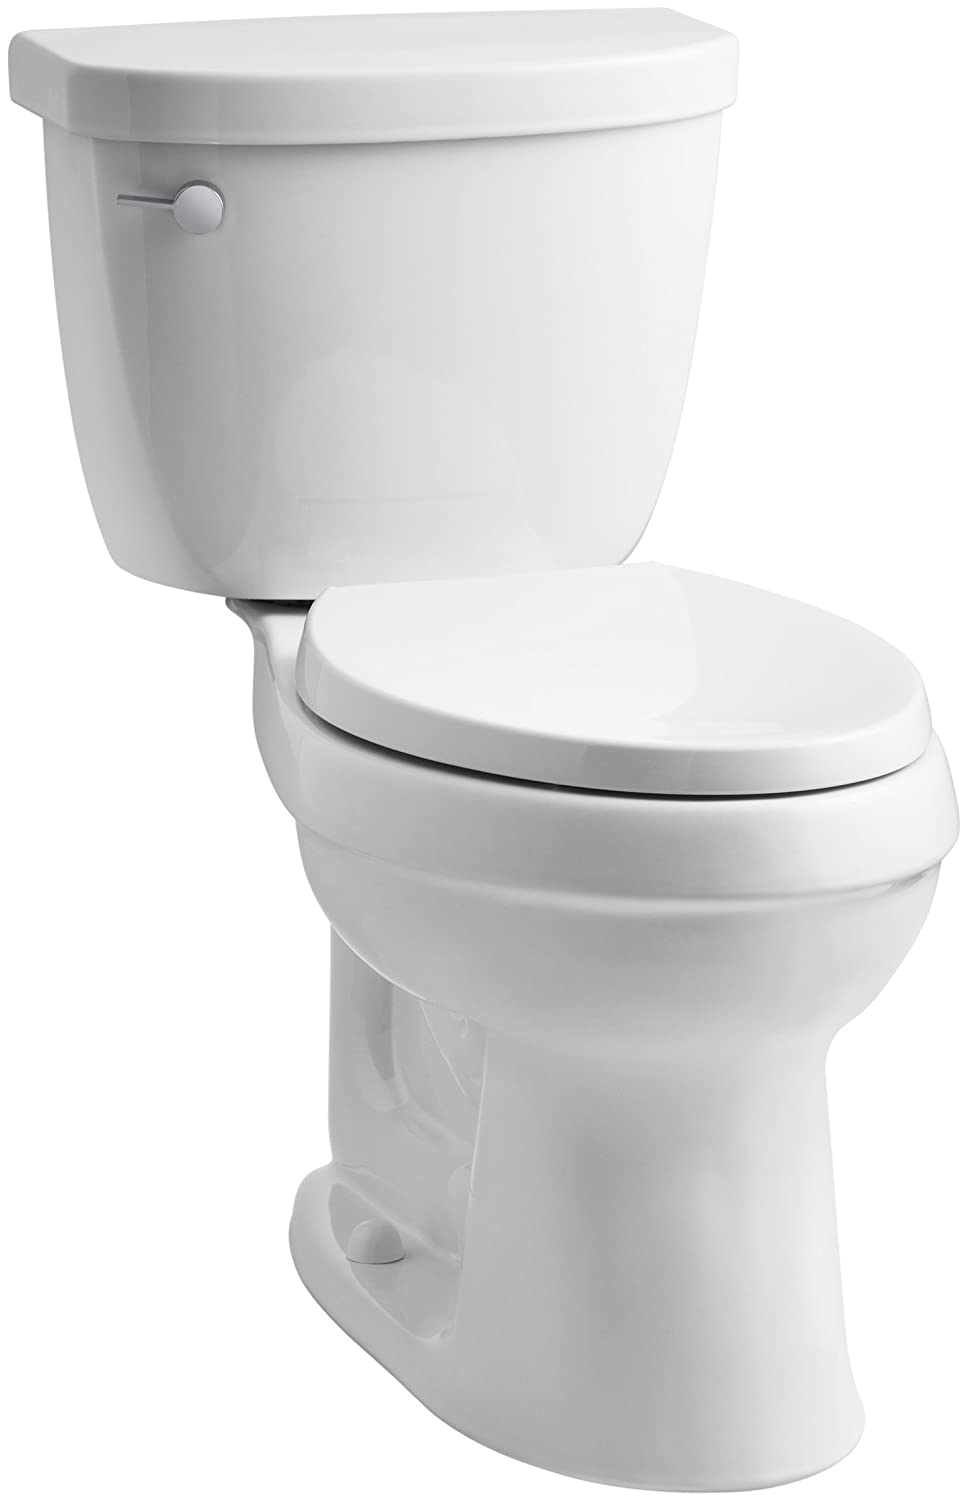 Top 5 Best 1.28 GPF Toilets Online Reviews in 2020 1